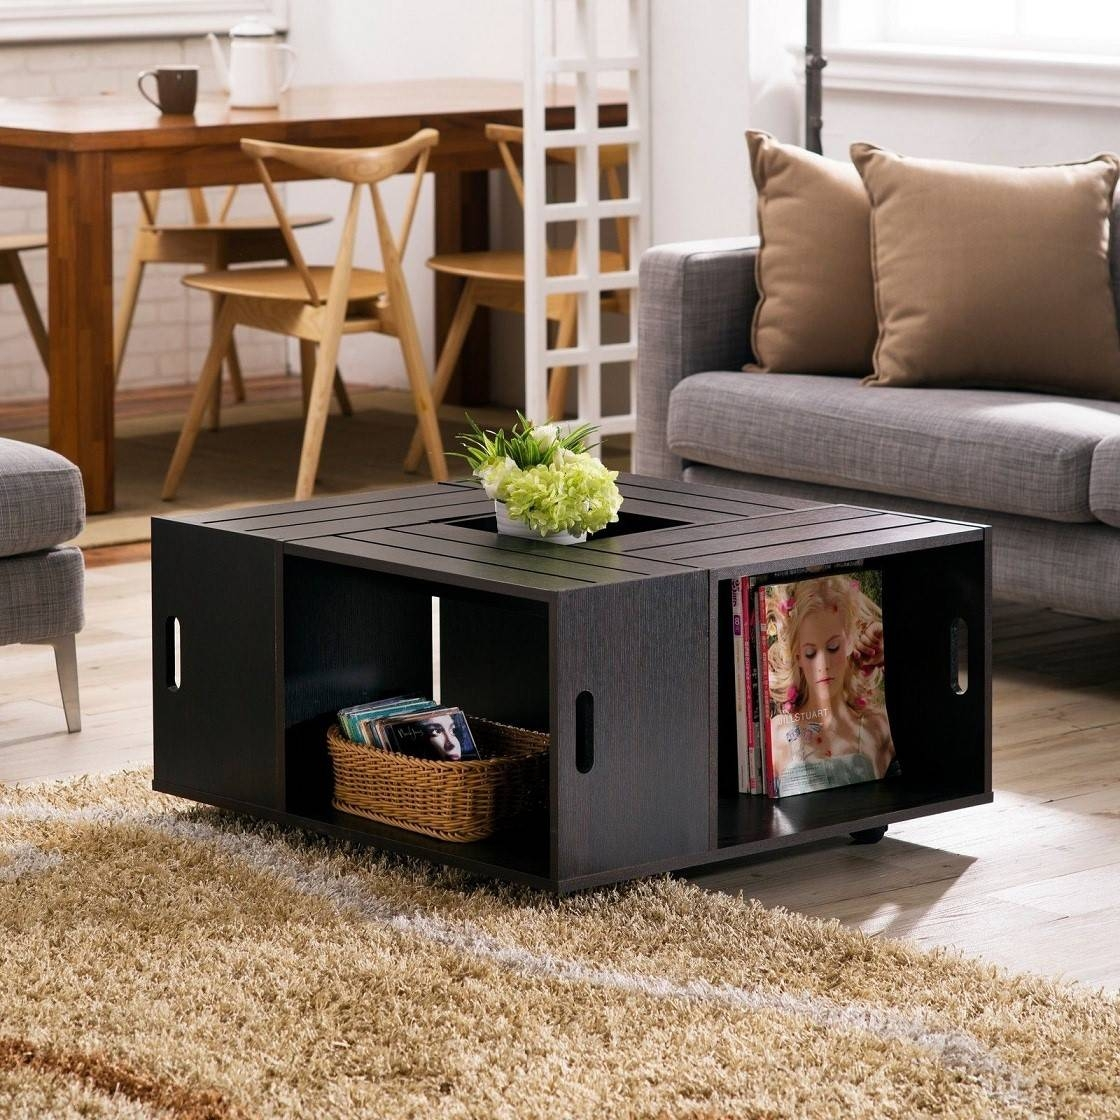 Coffee Table: Small Coffee Table With Storage Ideas Modern Coffee inside Square Coffee Table Storages (Image 12 of 30)